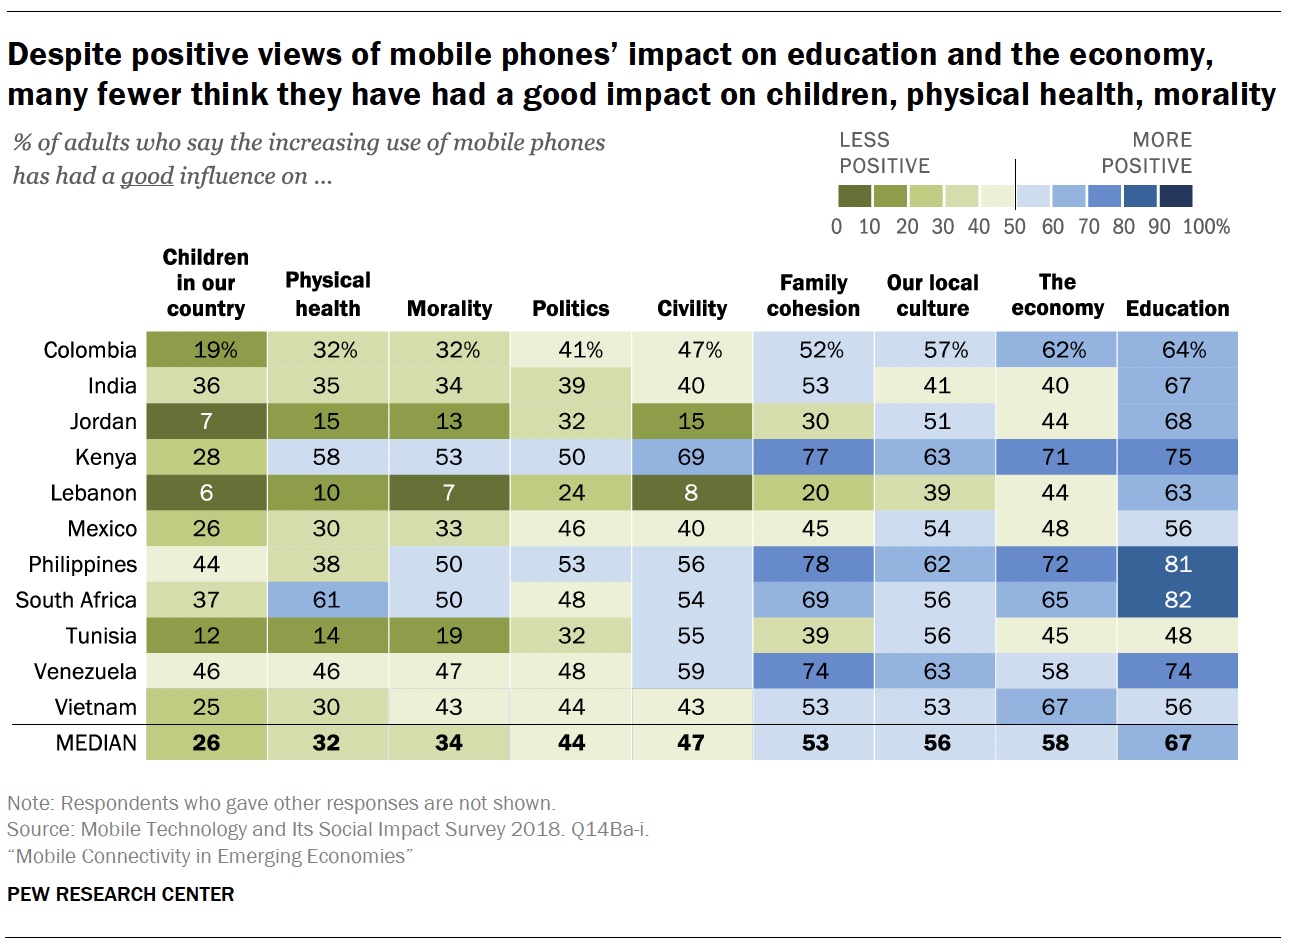 Despite positive views of mobile phones' impact on education and the economy, many fewer think they have had a good impact on children, physical health, morality